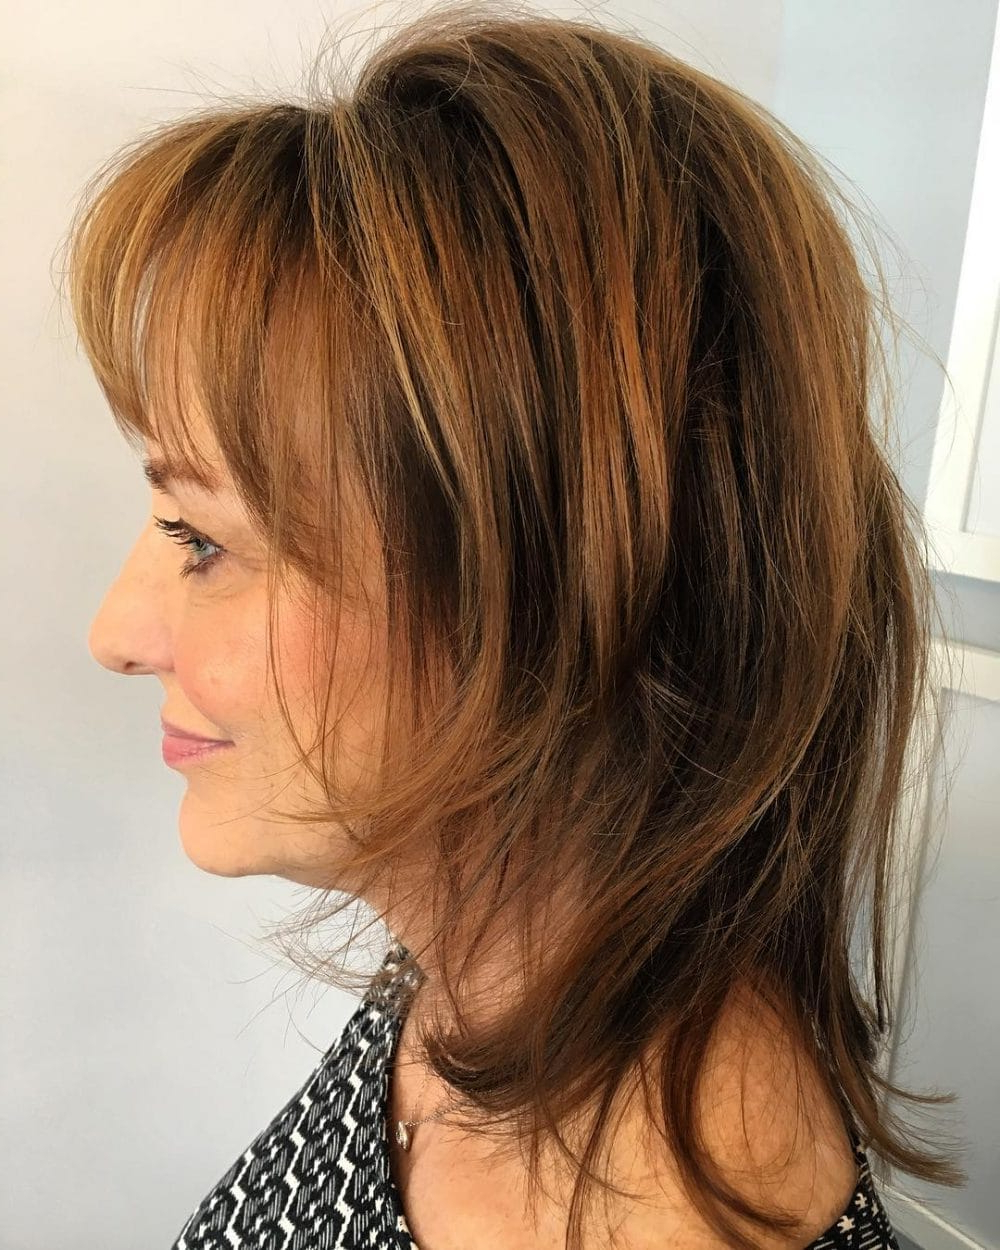 26 Modern Shag Haircuts To Try In 2019 For 2019 Razored Shag Haircuts For Long Thick Hair (View 2 of 20)